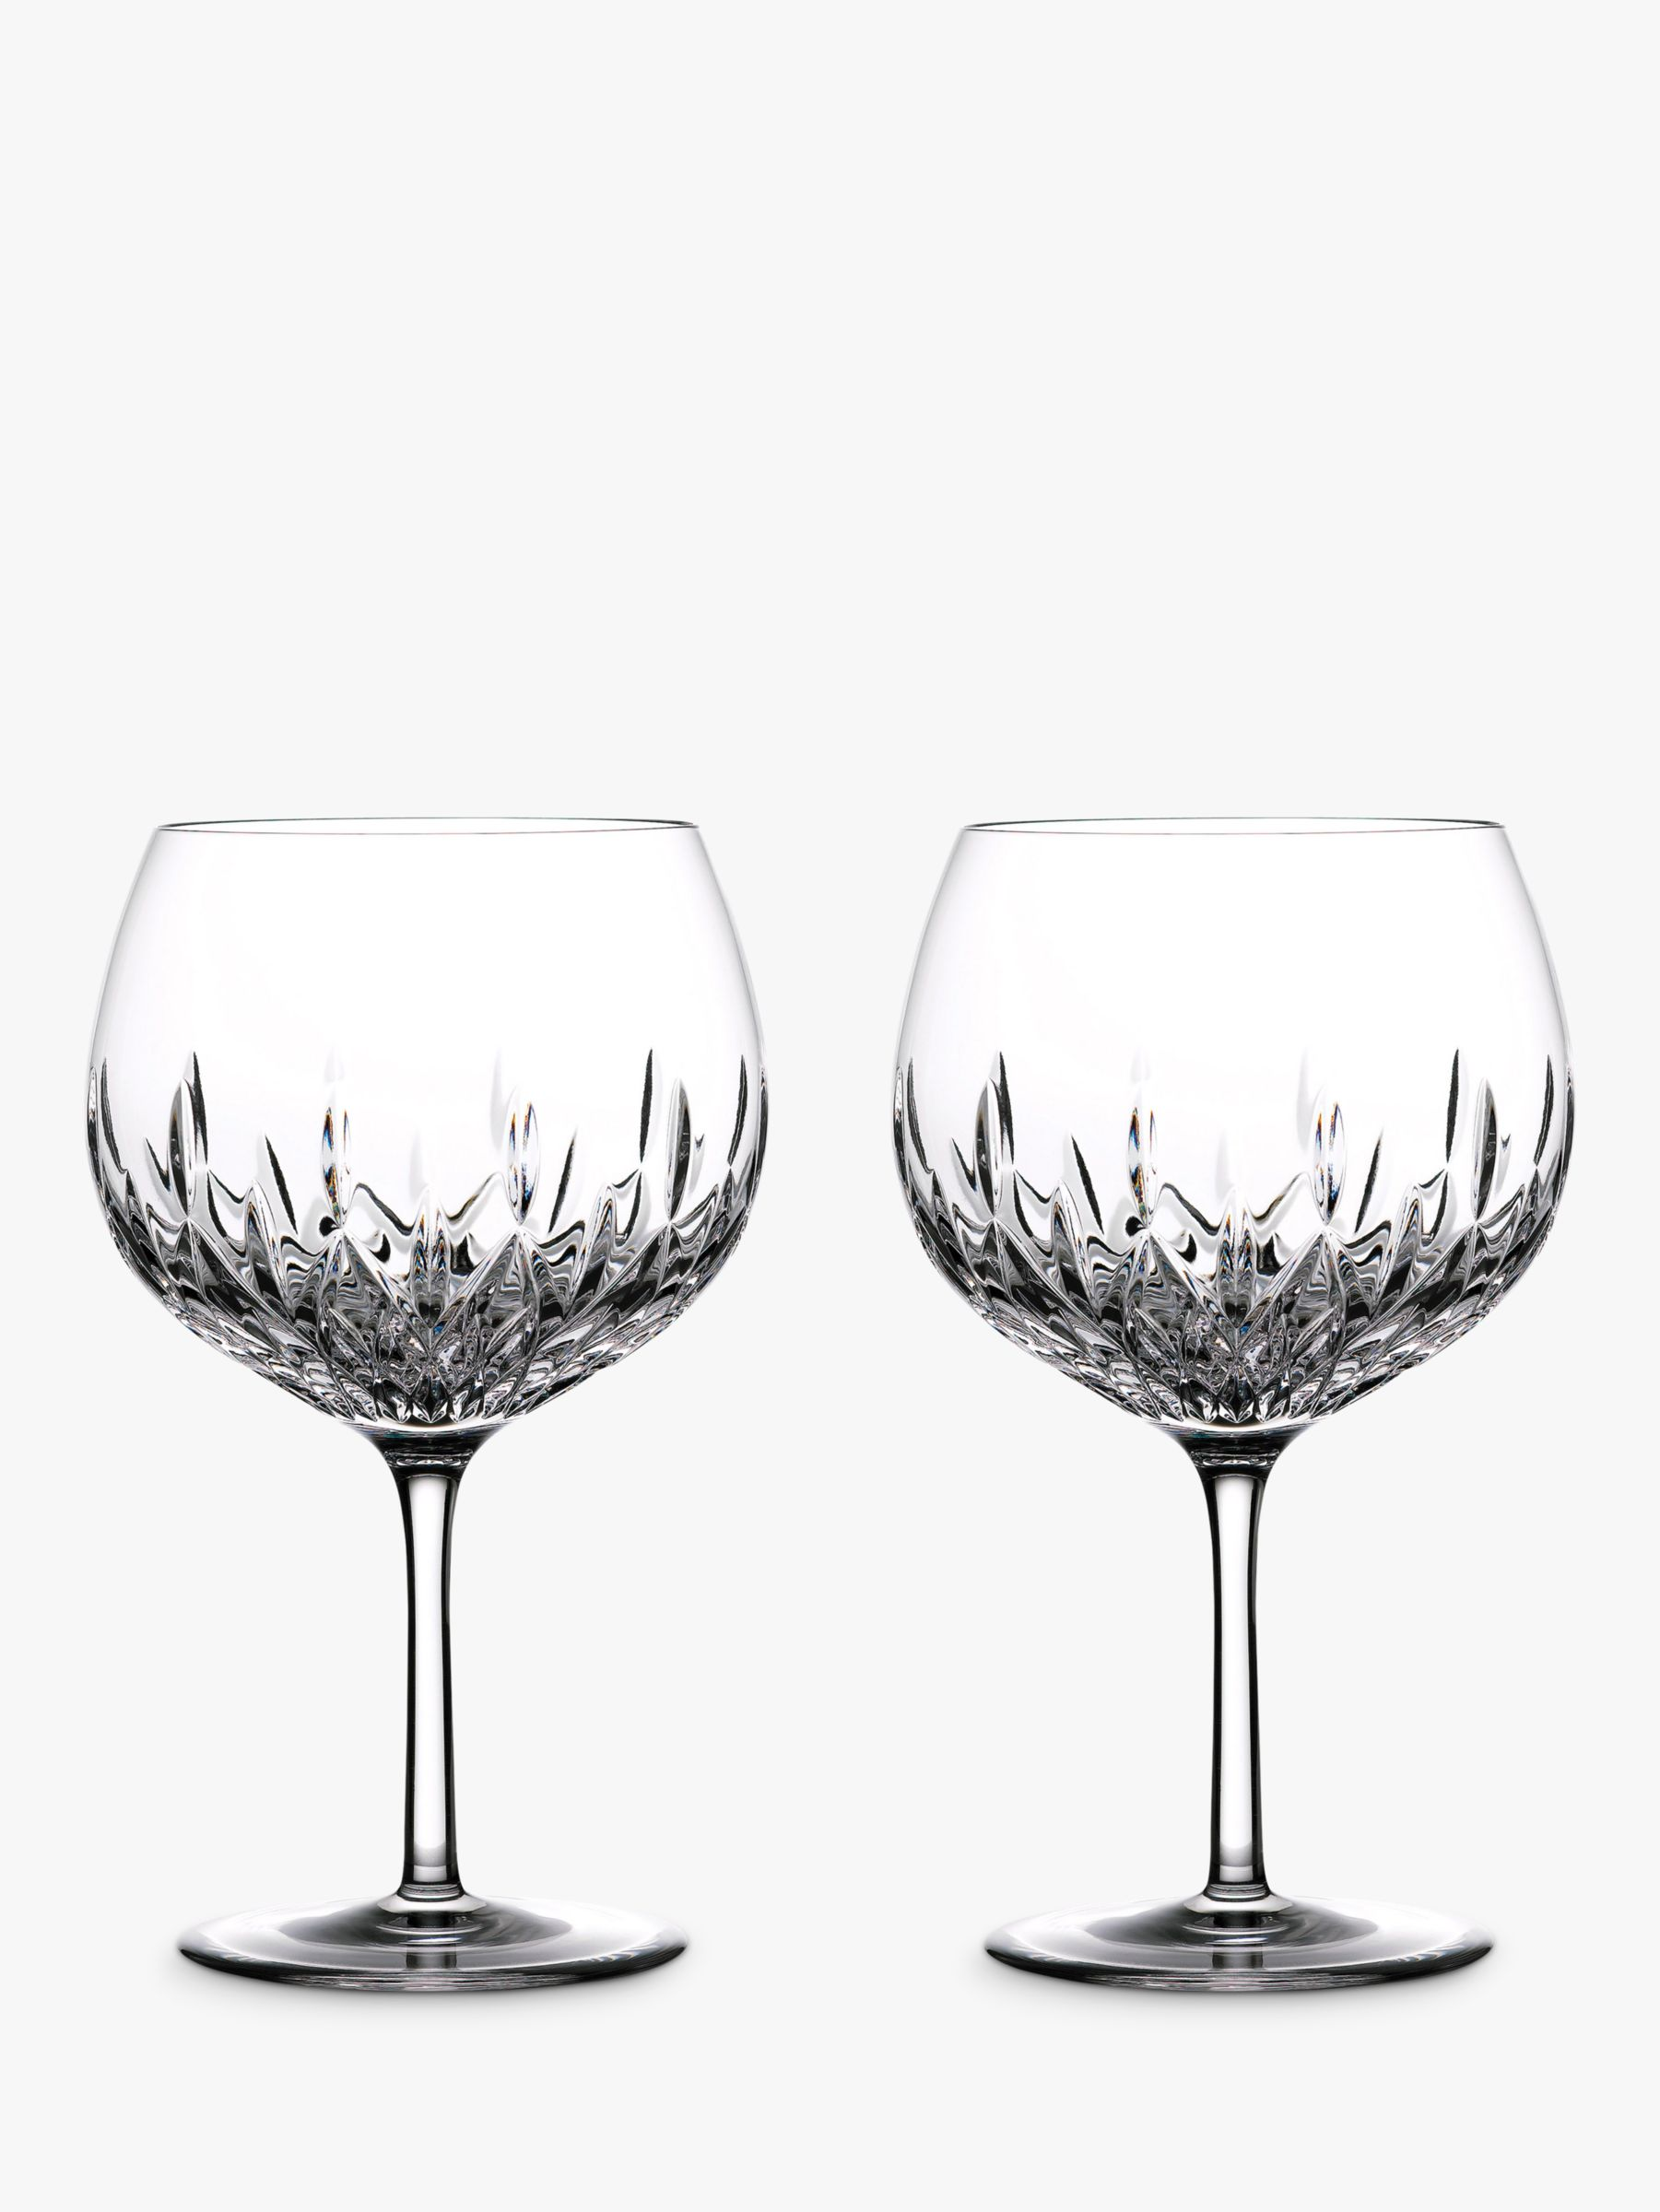 Waterford Waterford Gin Journeys Lismore Balloon Glasses, Set of 2, 550ml, Clear